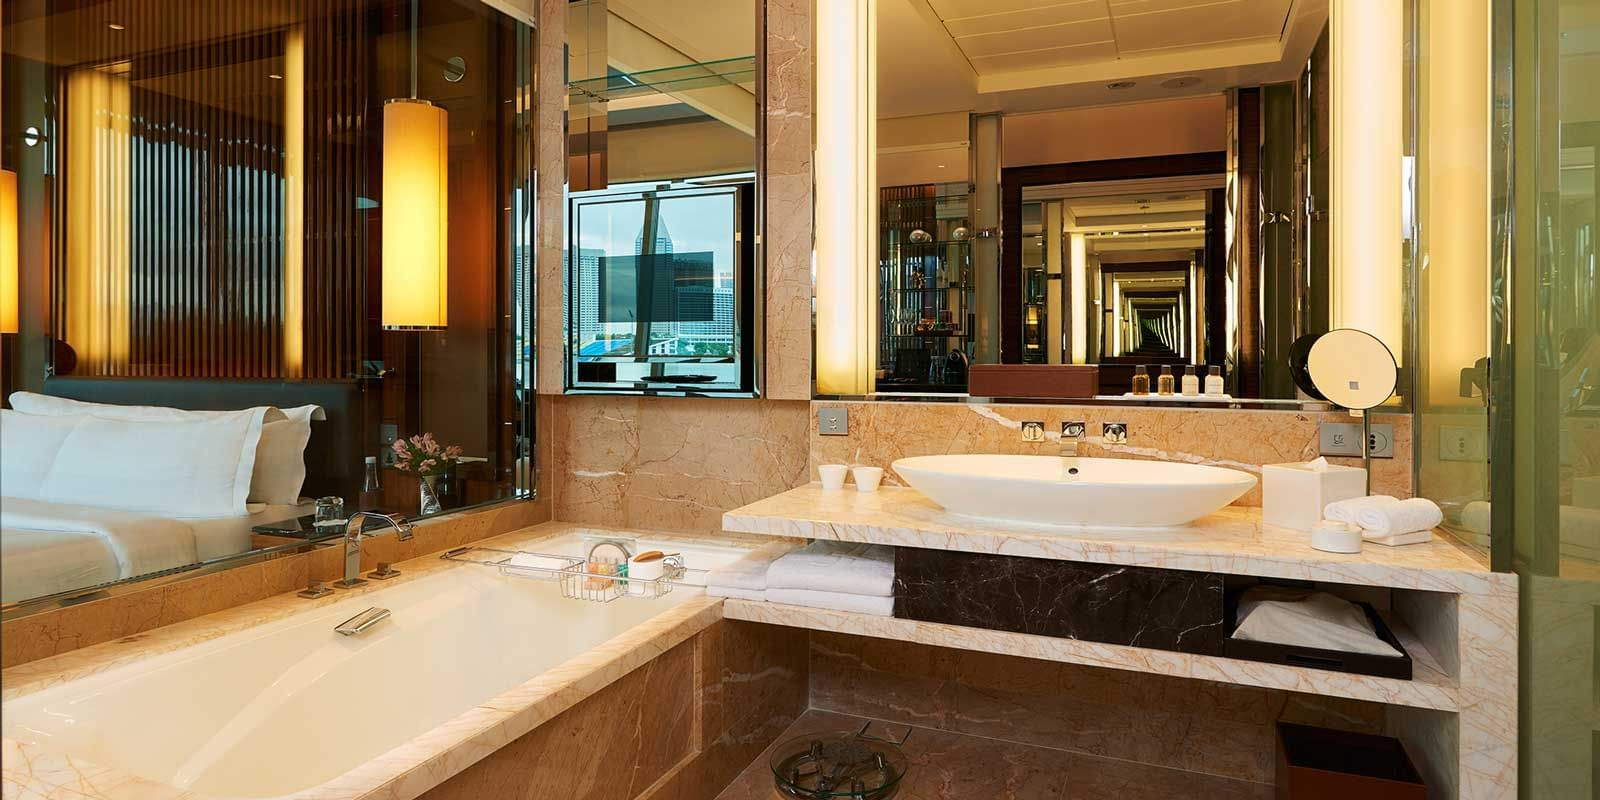 The bathroom with a bathtub in the Bay View Room at the hotel